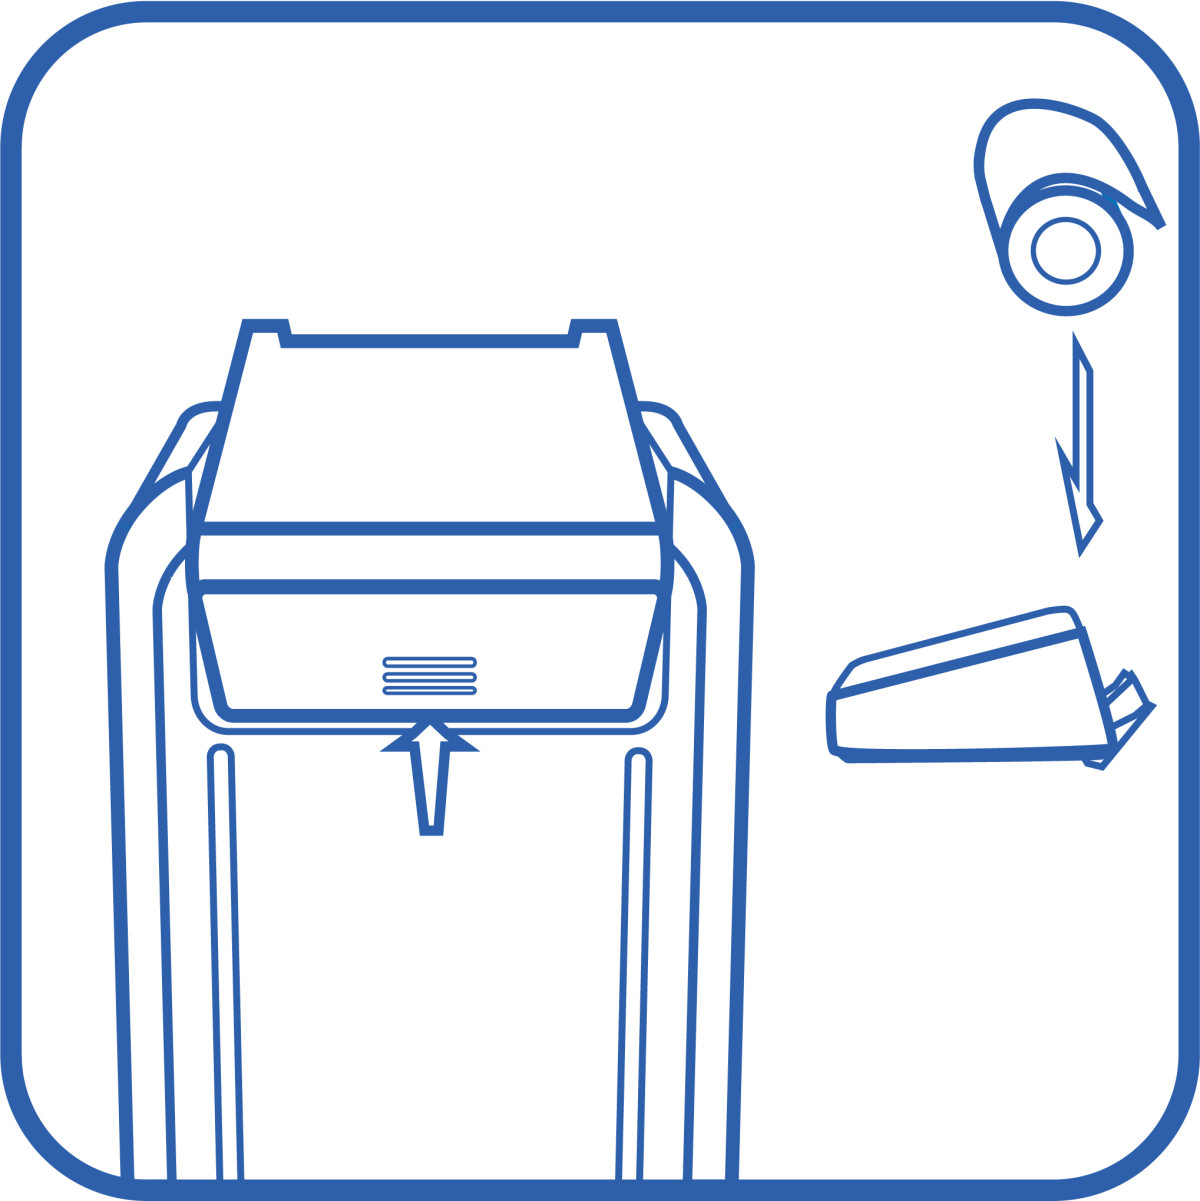 icon of reloading a paper roll into the 3g printer